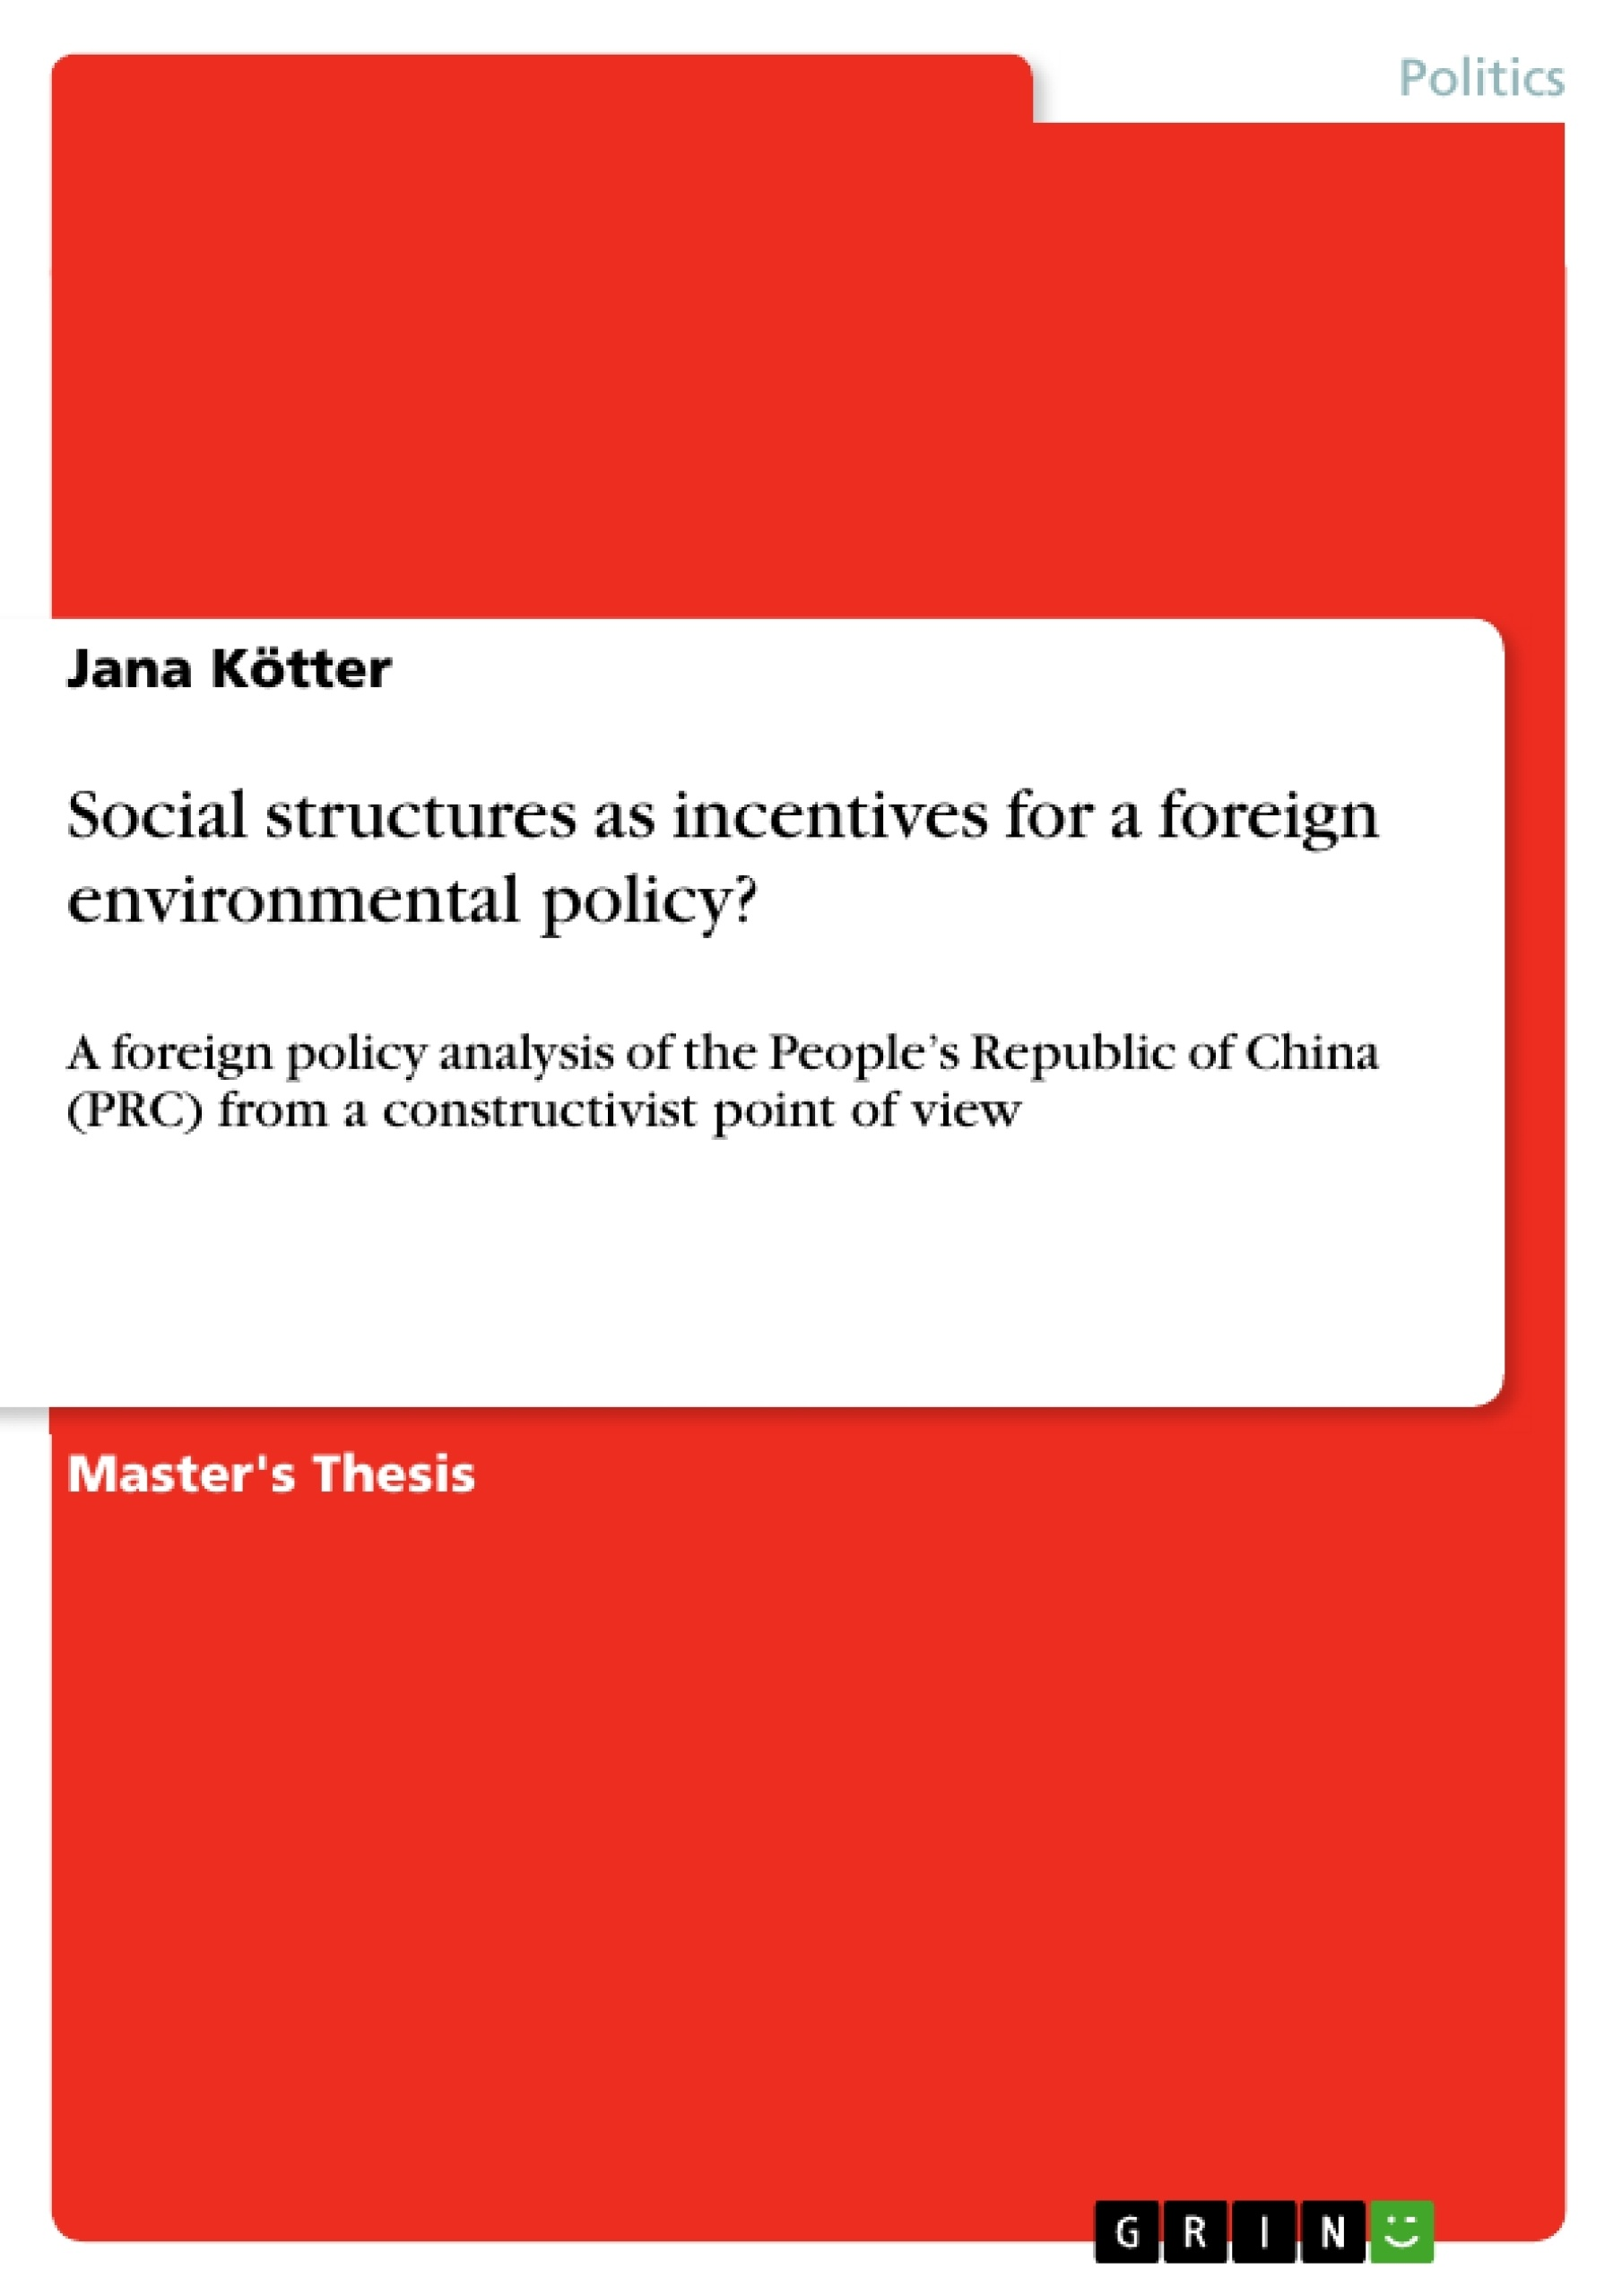 Title: Social structures as incentives for a foreign environmental policy?